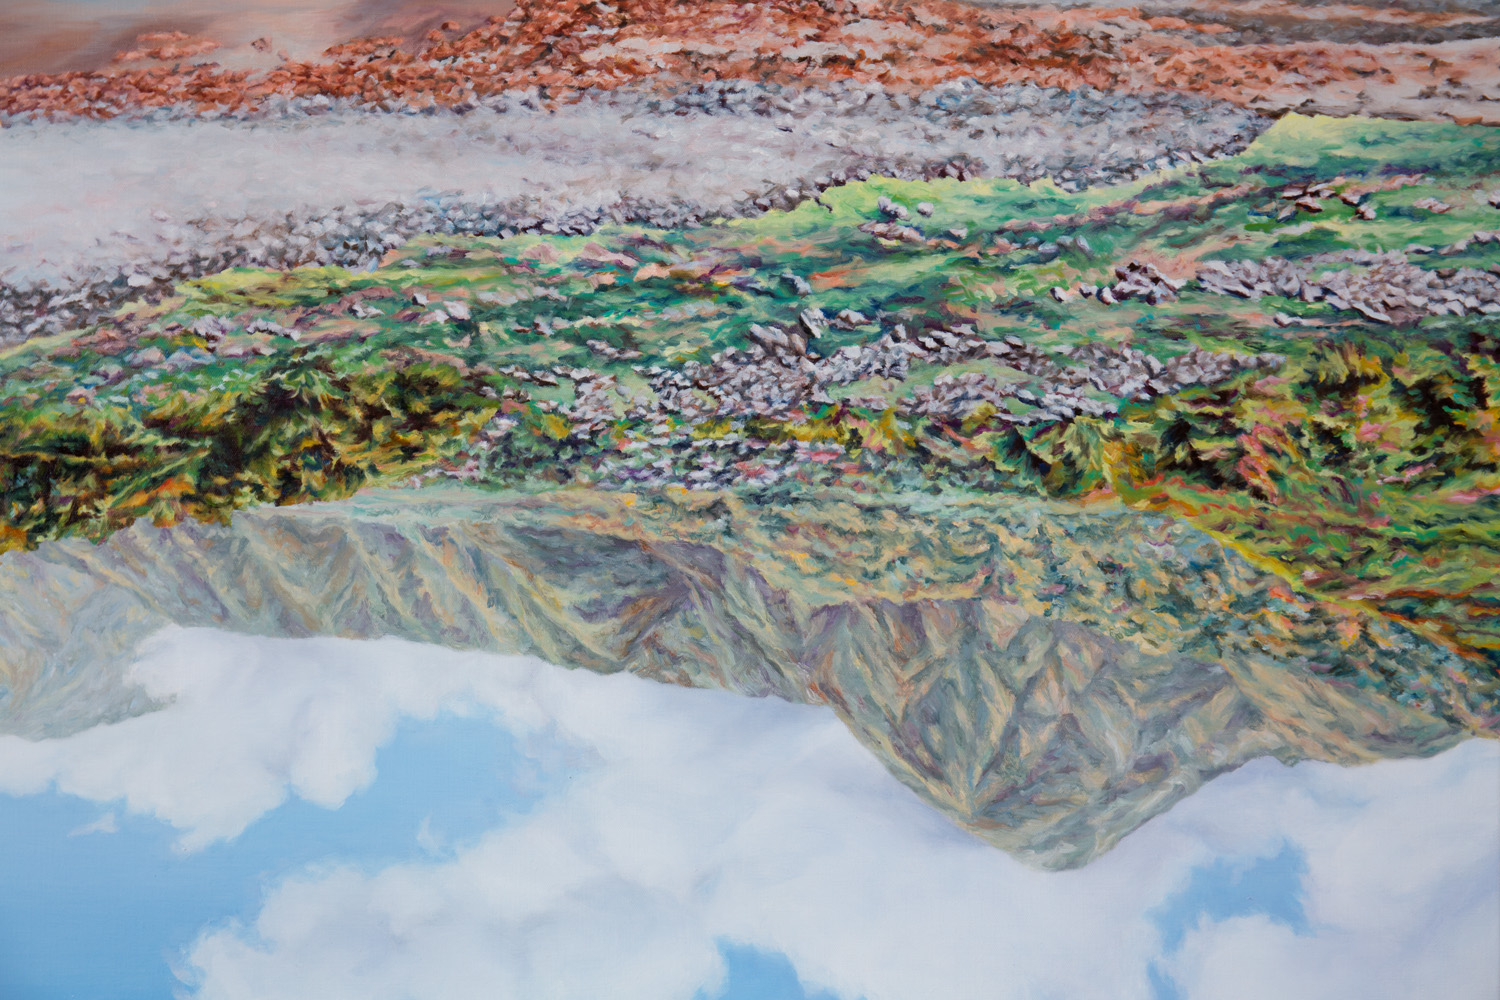 Kevin Chin, Peaks (detail), 2018, oil on linen, 137 x 198 cm